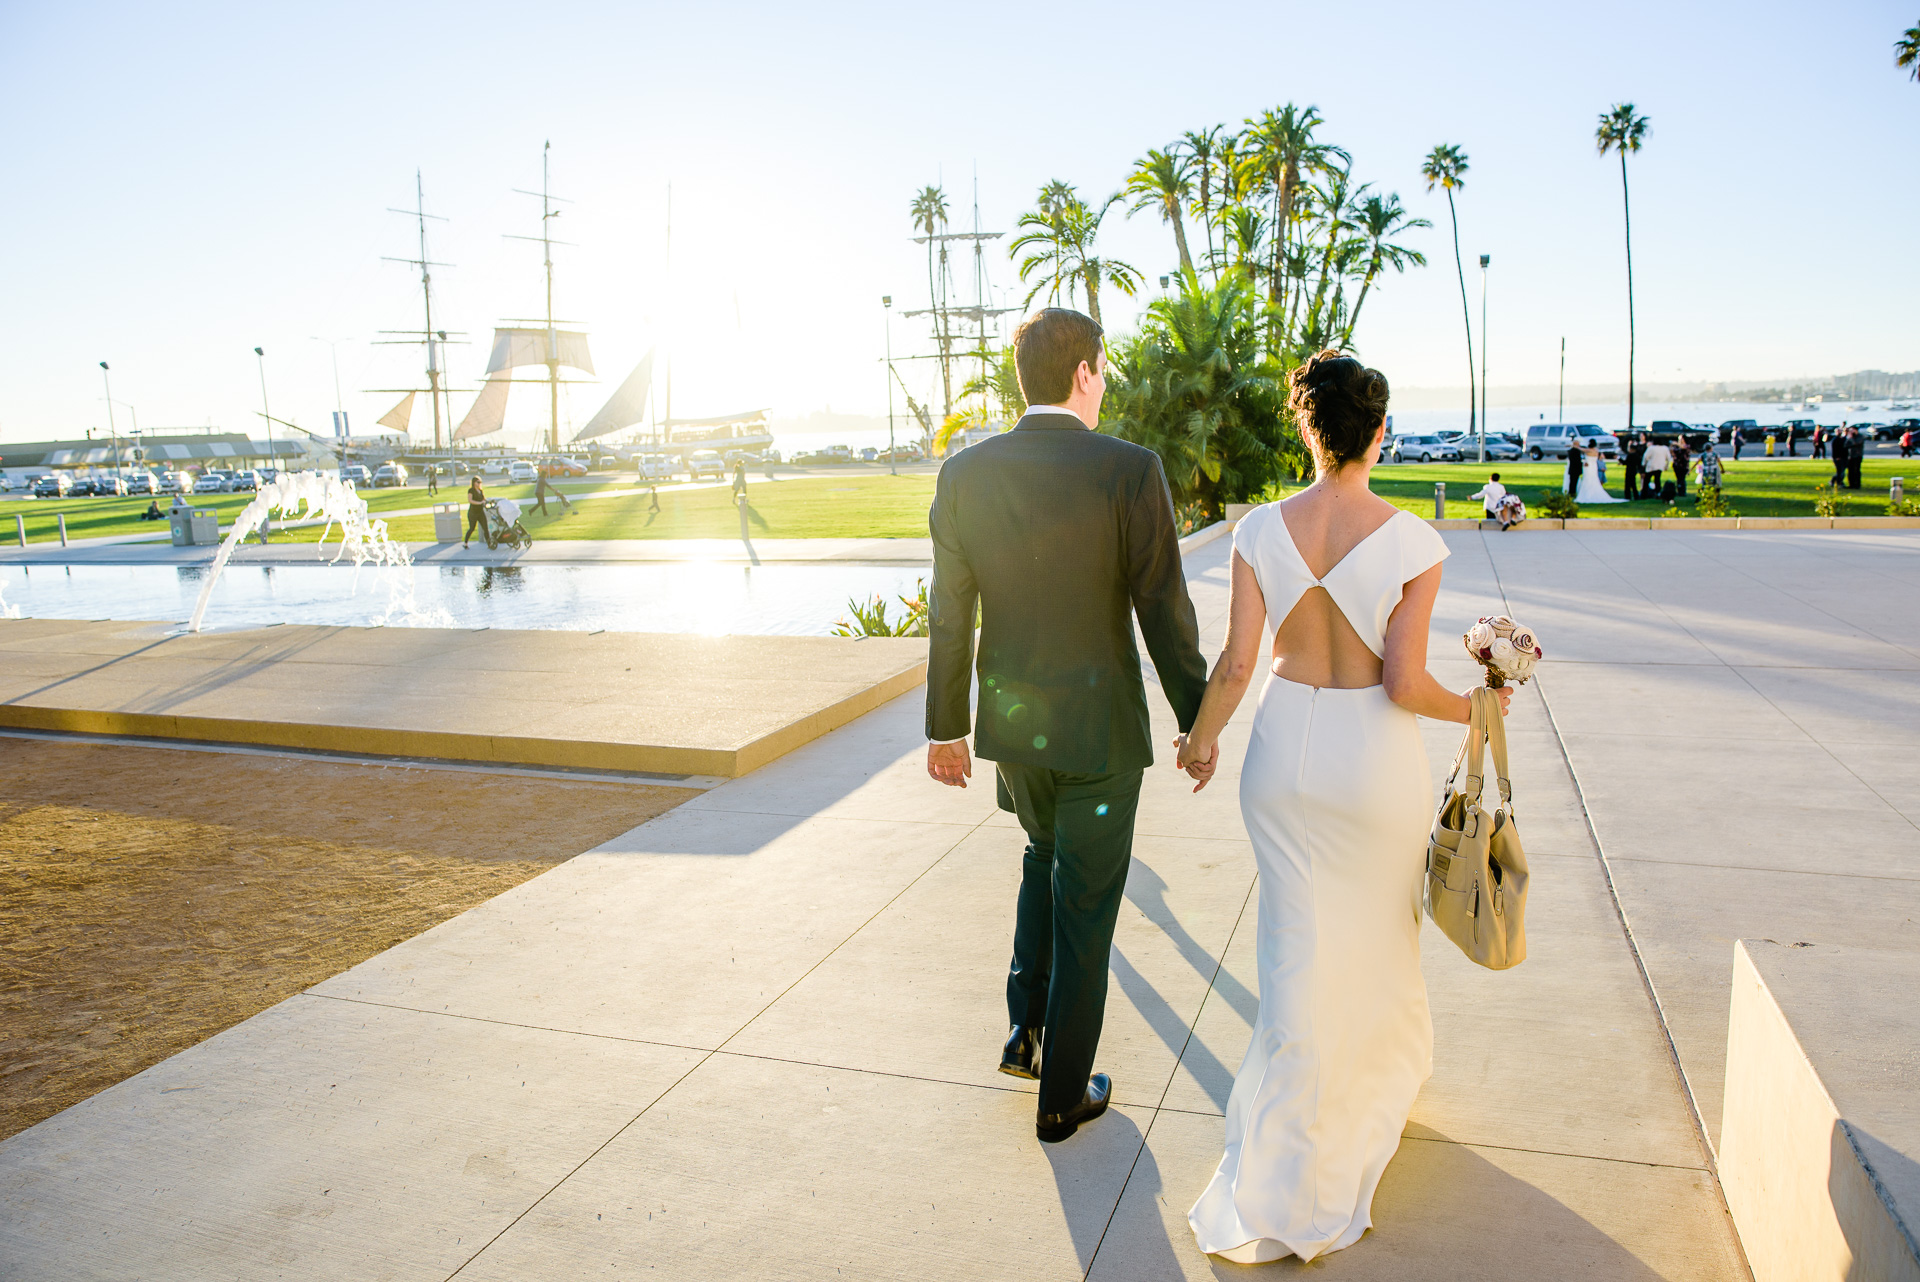 12.29.17 - Michelle and Tommaso Wedding - San Diego Courthouse -  Paul Douda Photography - 093.jpg